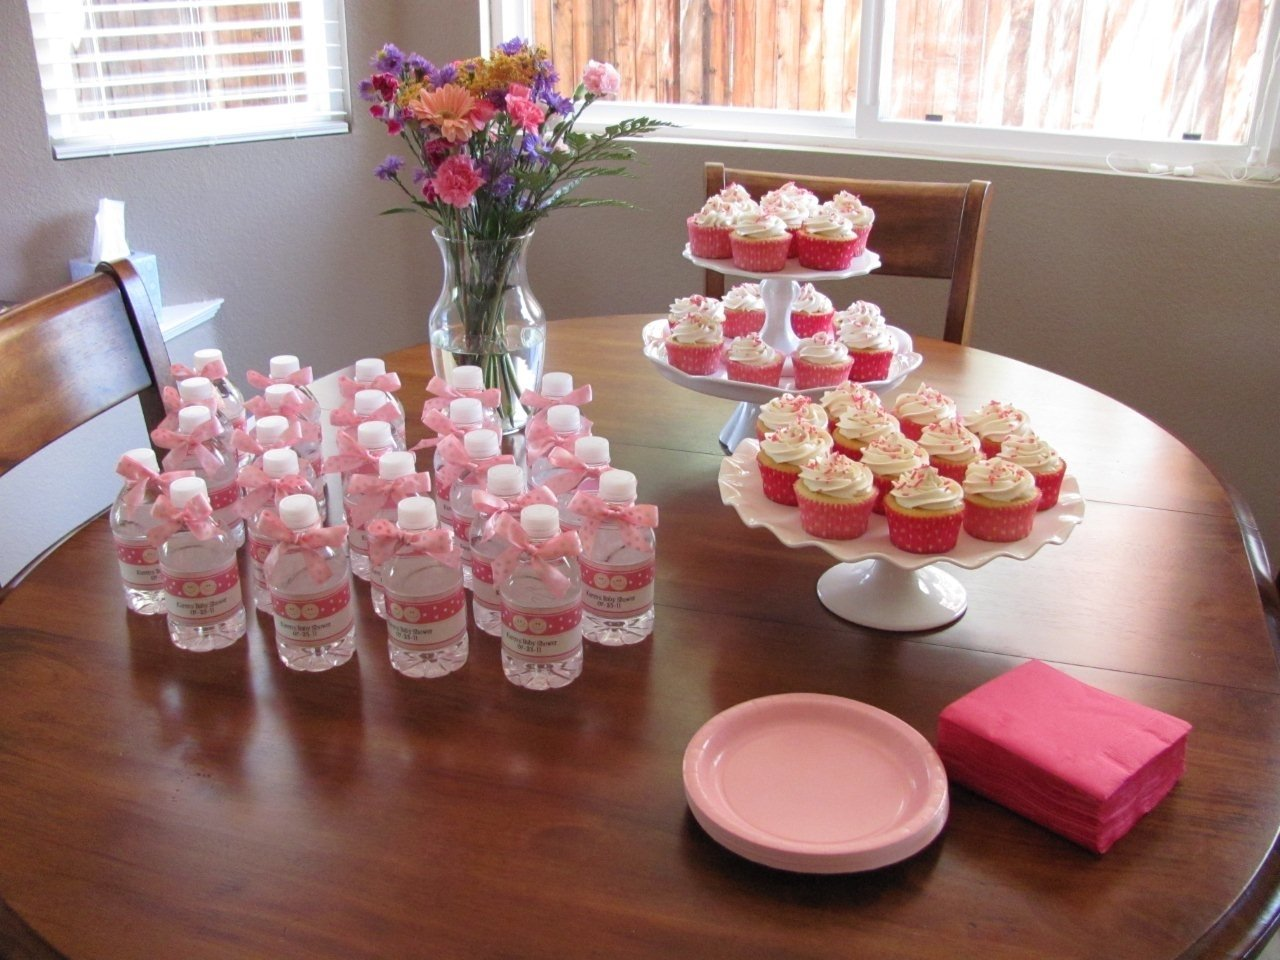 10 Unique Baby Shower Dessert Table Ideas dessert table ideas for a baby shower pink baby shower sweets table 2020